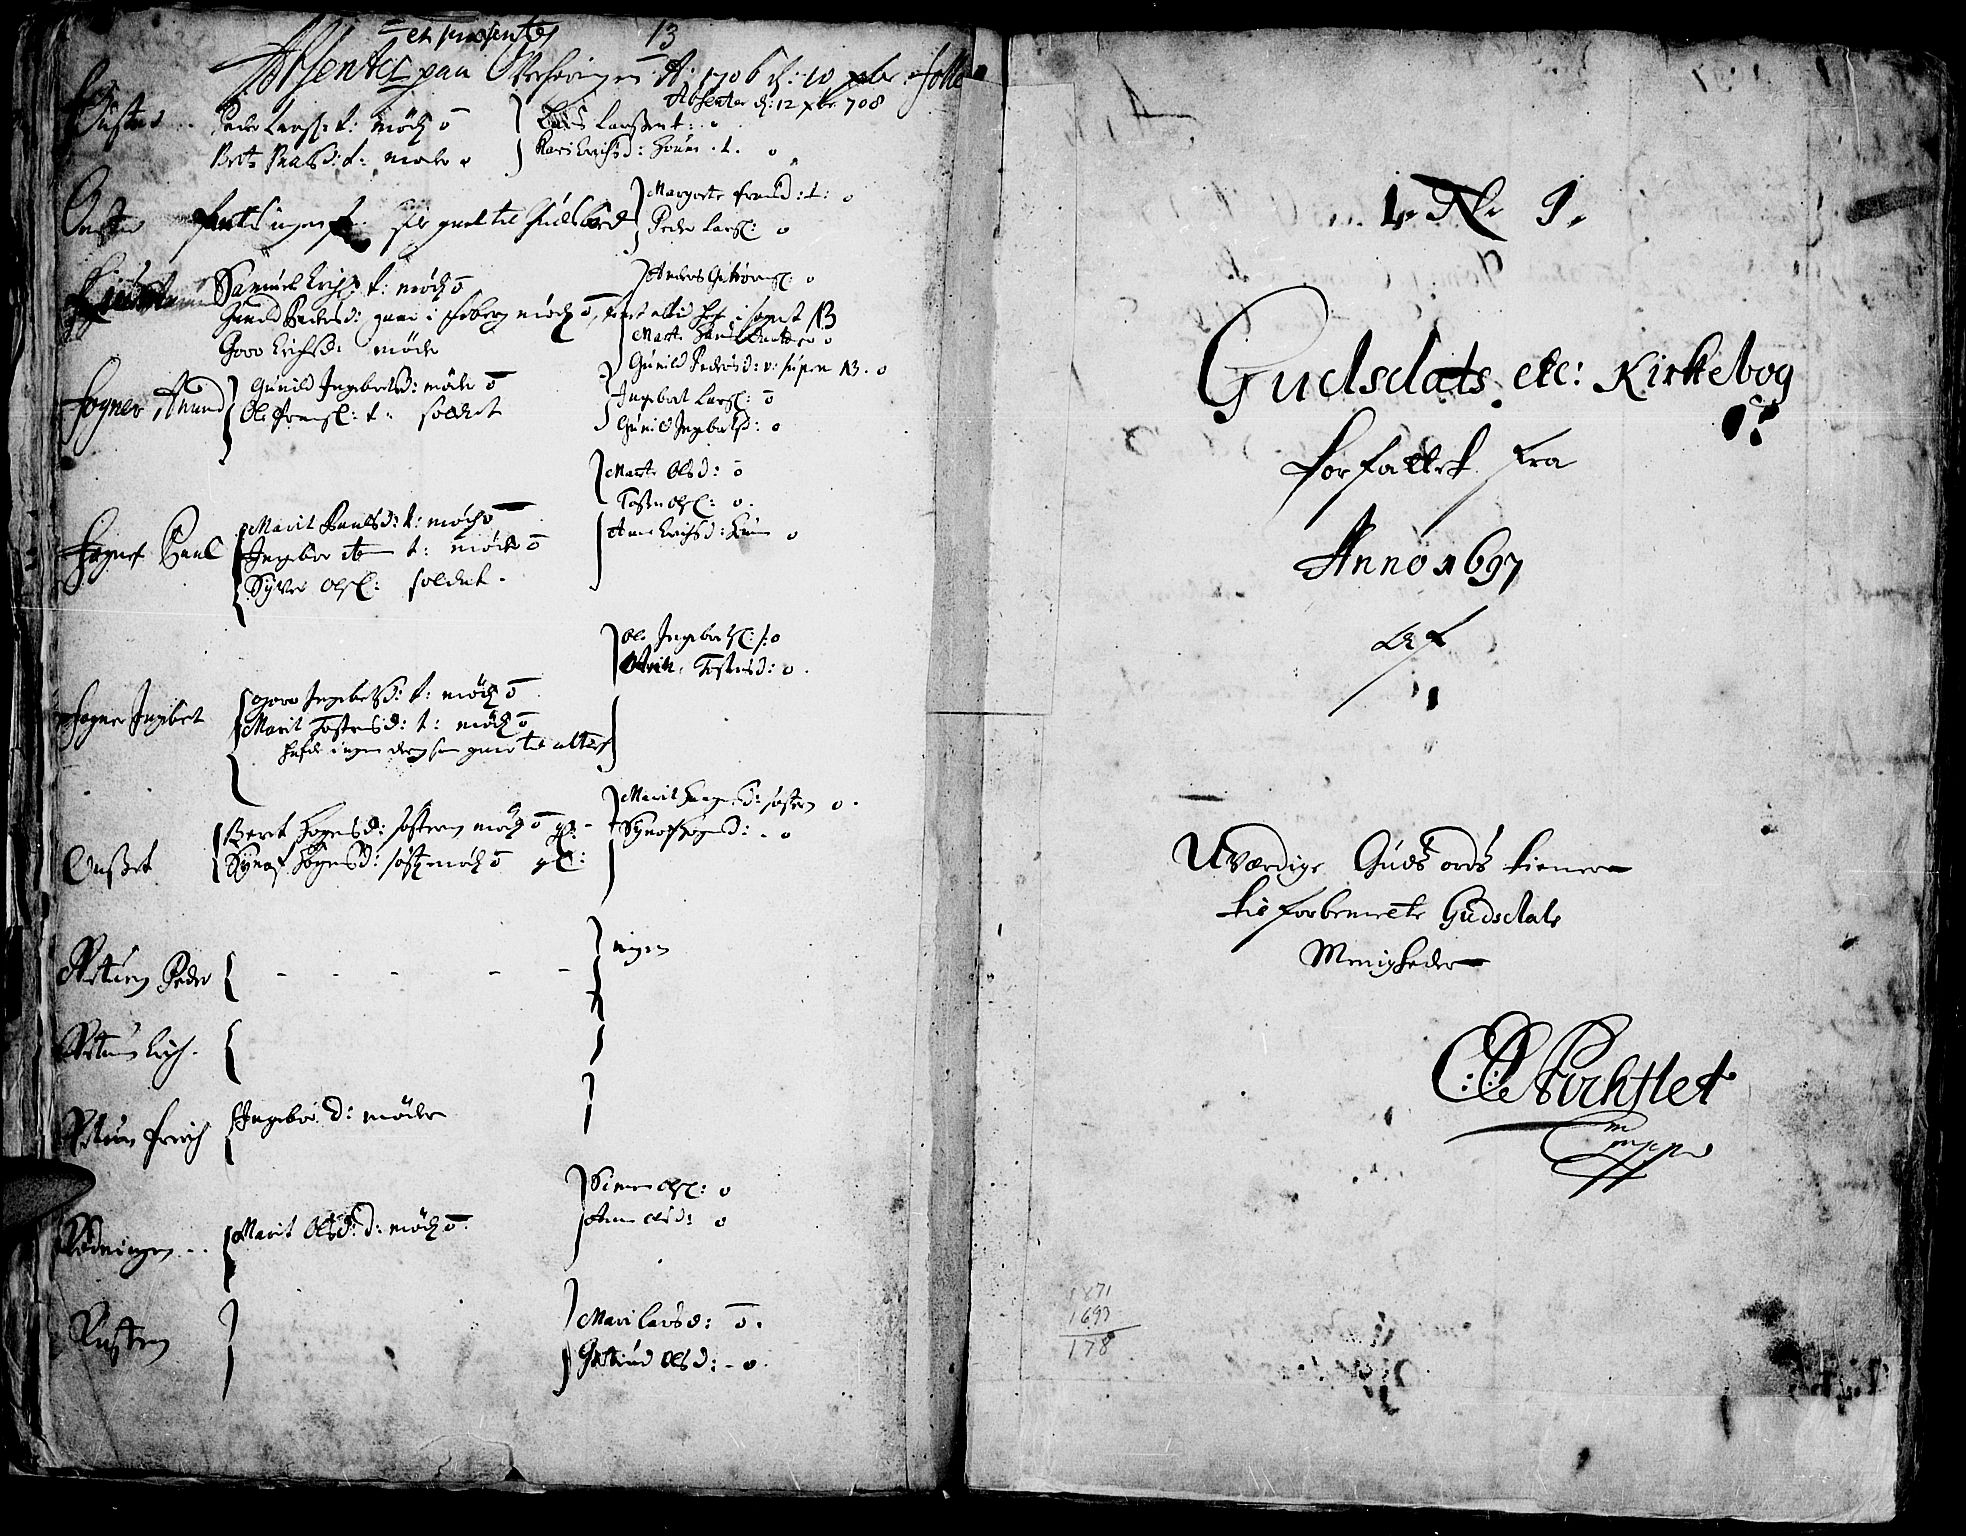 SAH, Gausdal prestekontor, Parish register (official) no. 1, 1693-1728, p. 13